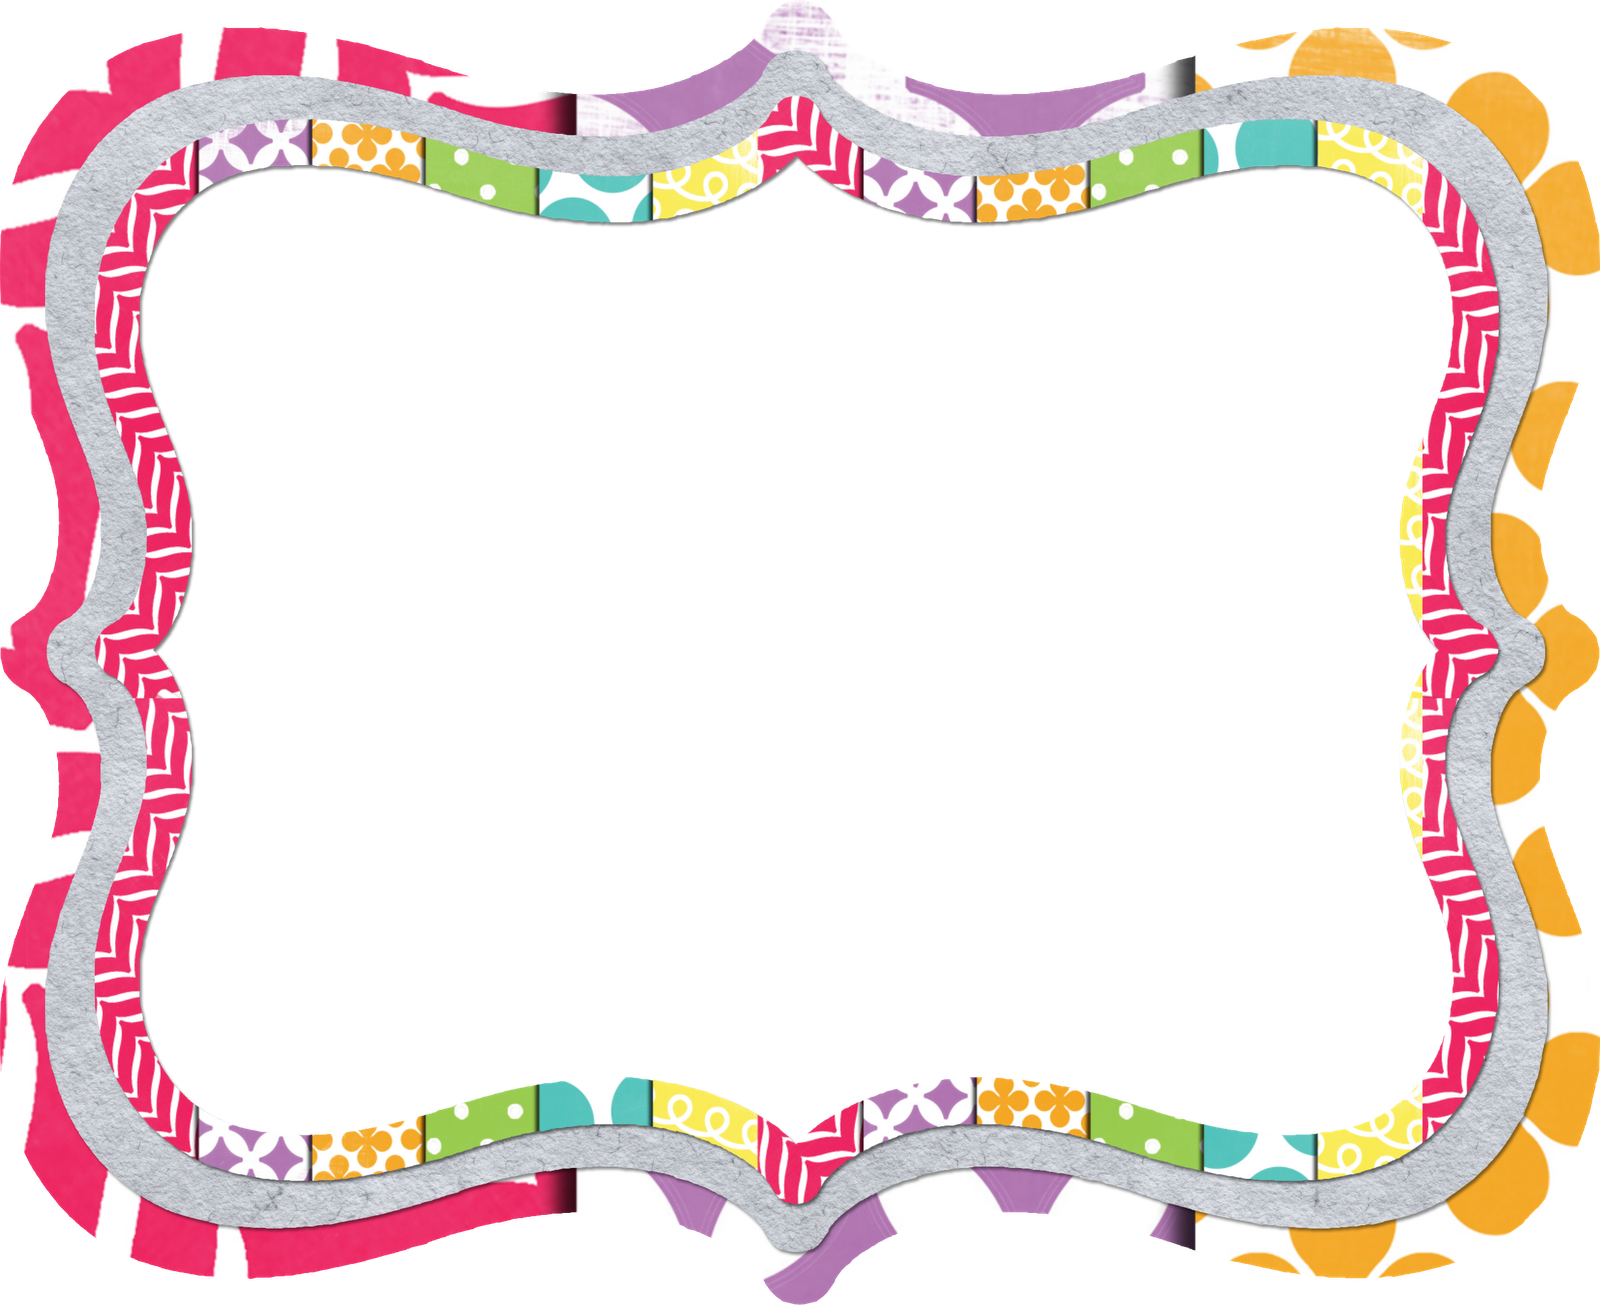 School paper clipart clipart freeuse stock School borders and frames free clipart images - ClipartPost clipart freeuse stock